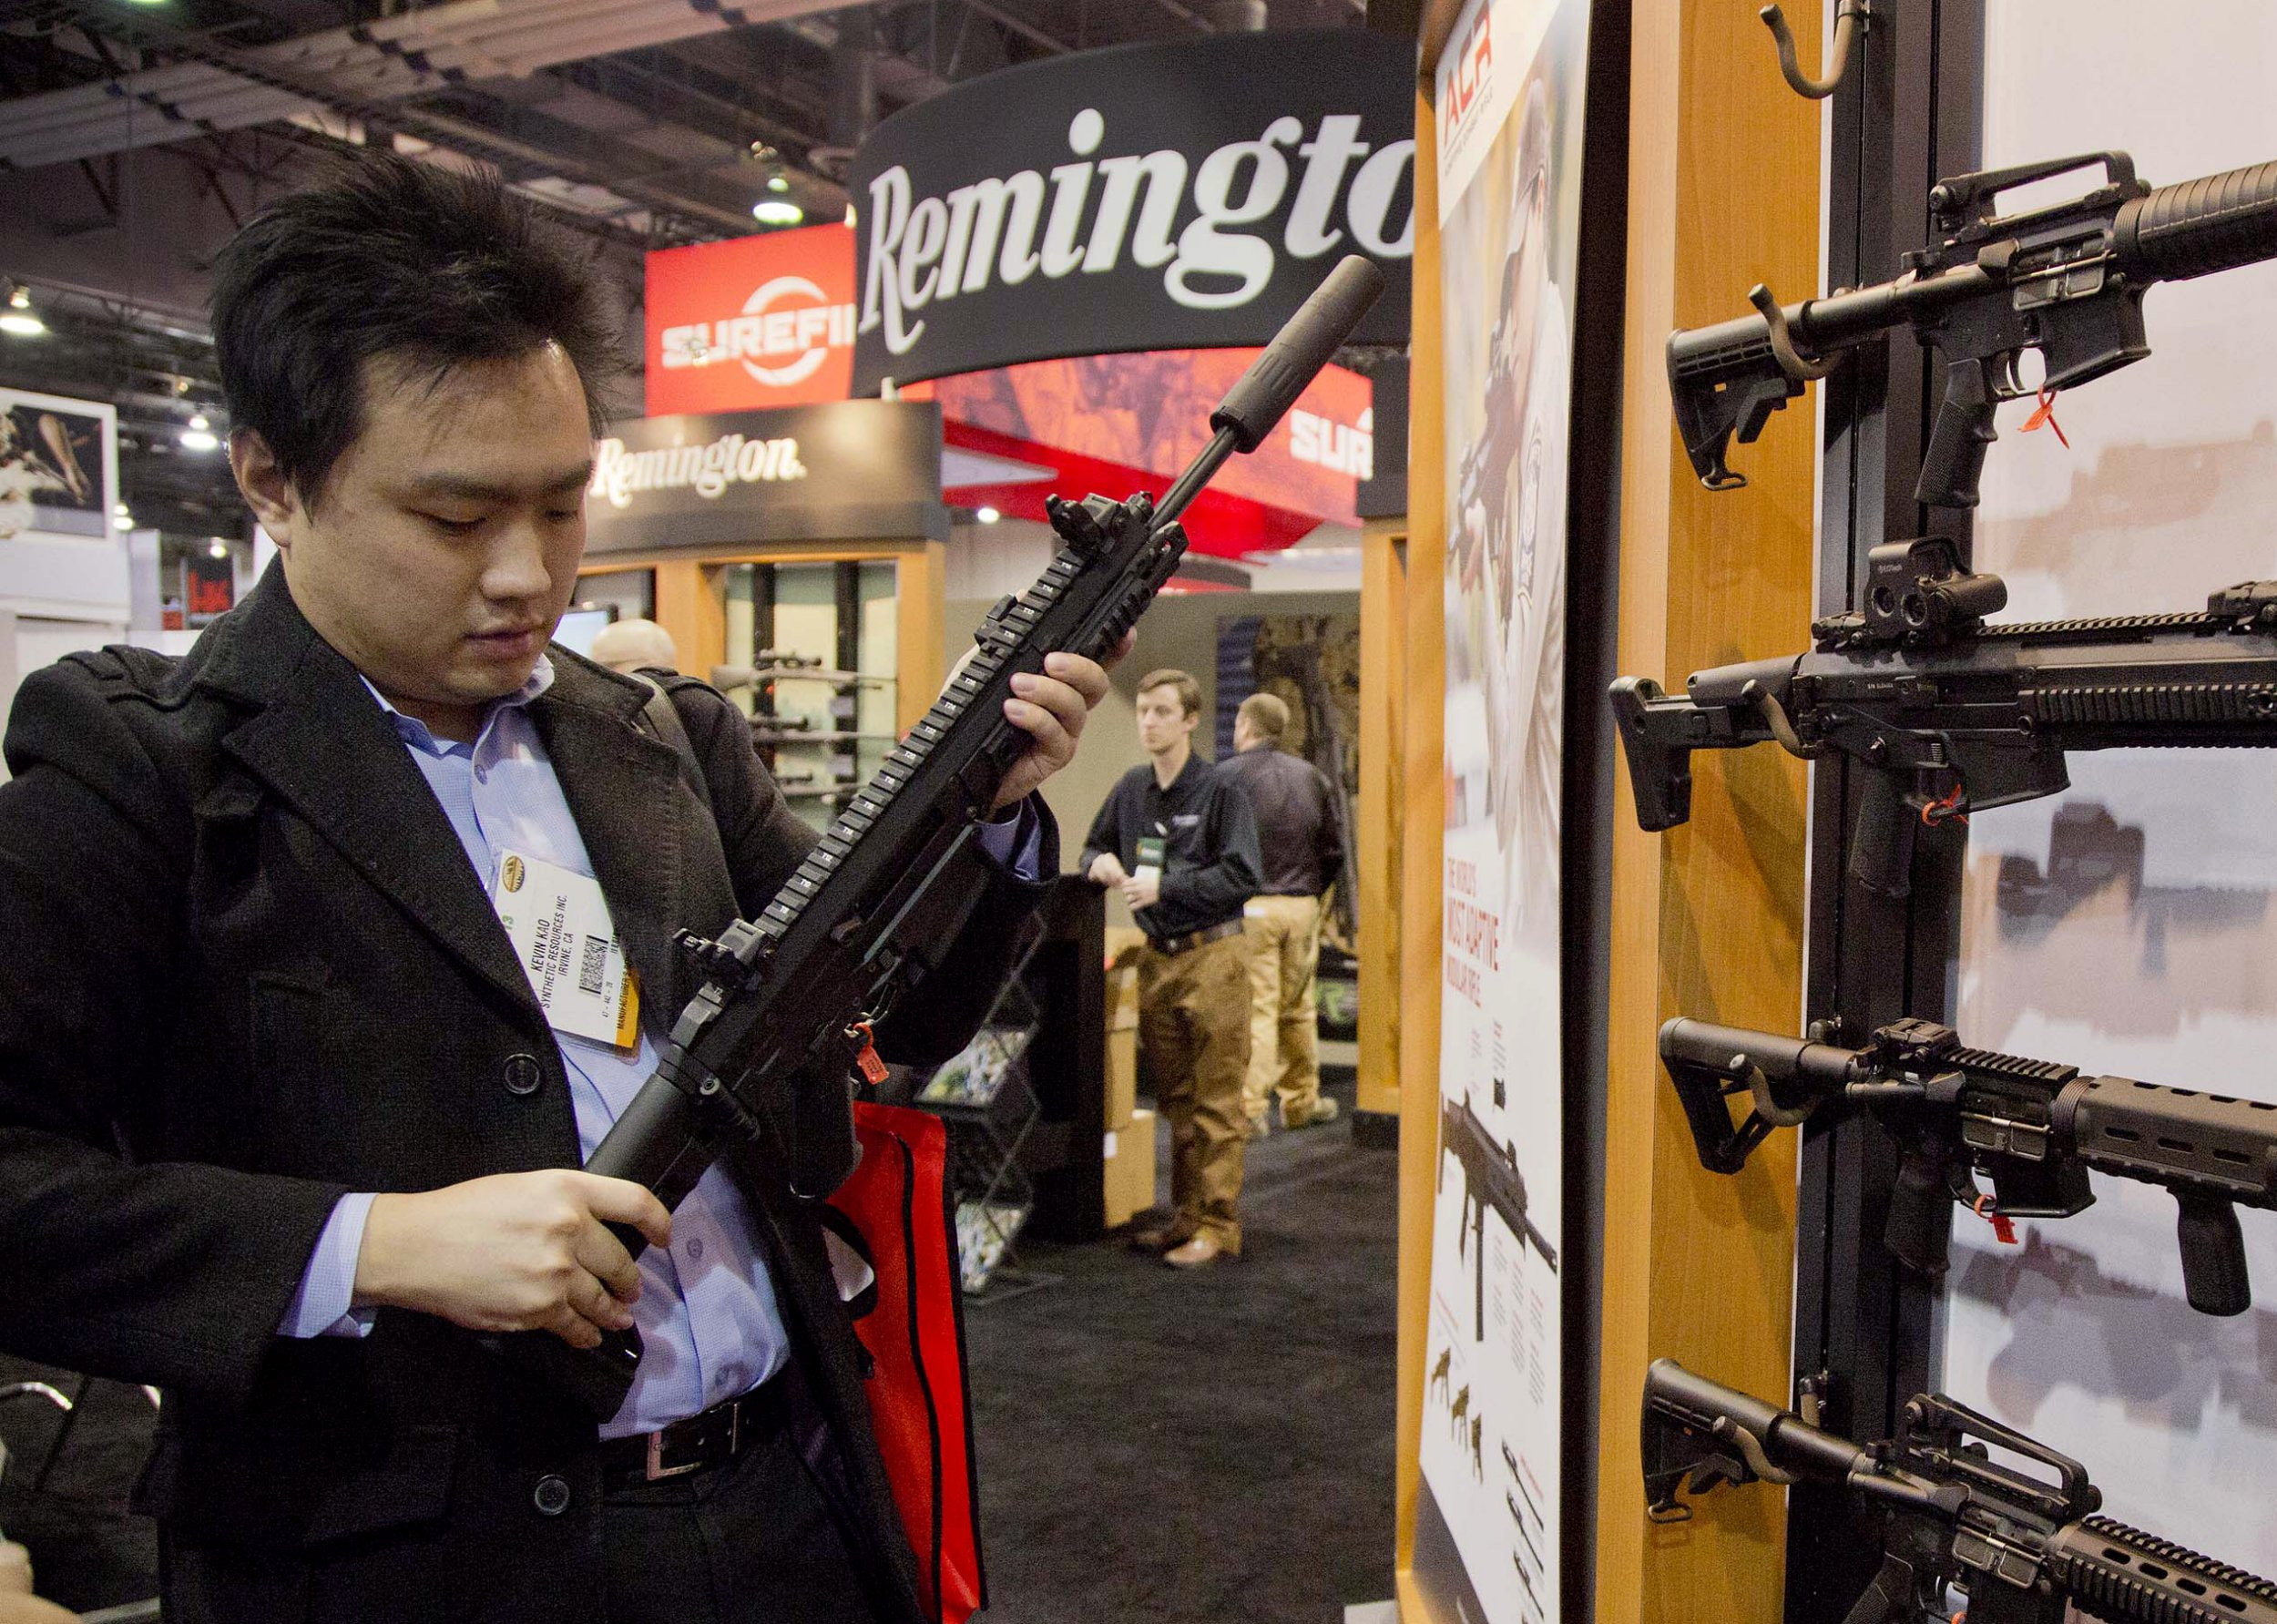 FILE- In this Jan. 15, 2013, file photo, accessories manufacturer Kevin Kao, of Irvine, Calif., examines a military grade Remington Adaptive Combat Rifle at the 35th annual SHOT Show in Las Vegas. U.S. gun maker Remington Outdoor Company filed for bankruptcy protection, after years of falling sales and lawsuits tied to the Sandy Hook Elementary School massacre. Records from the bankruptcy court of the district of Delaware show that the company filed late Sunday, March 25, 2018. (AP Photo/Julie Jacobson, File)